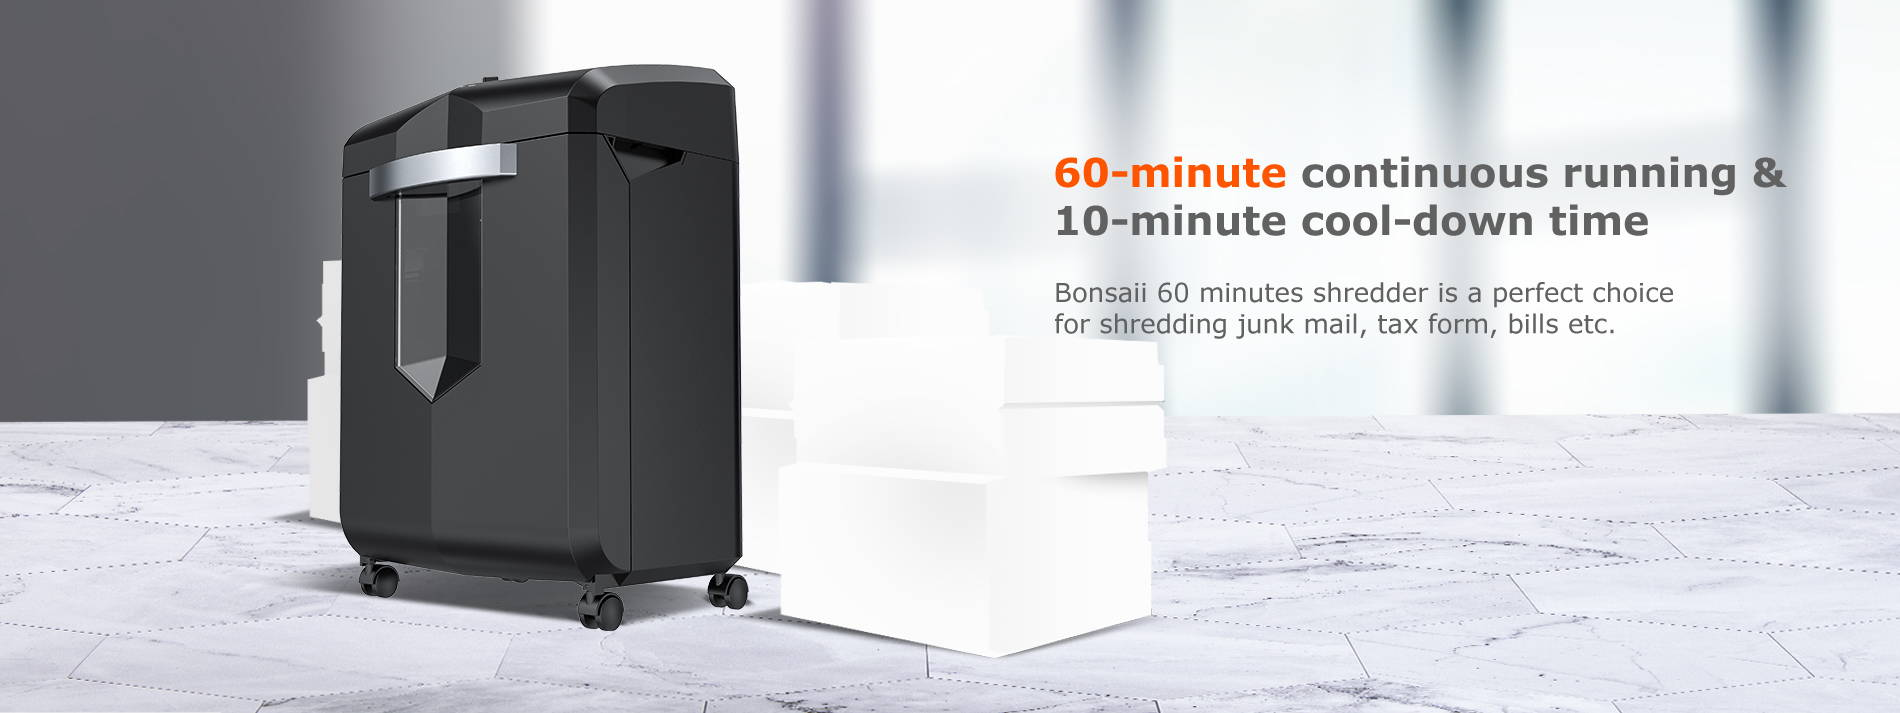 60-minute continuous running & 10-minute cool-down time  Bonsaii 60 minutes shredder is a perfect choice for shredding junk mail, tax form, bills etc